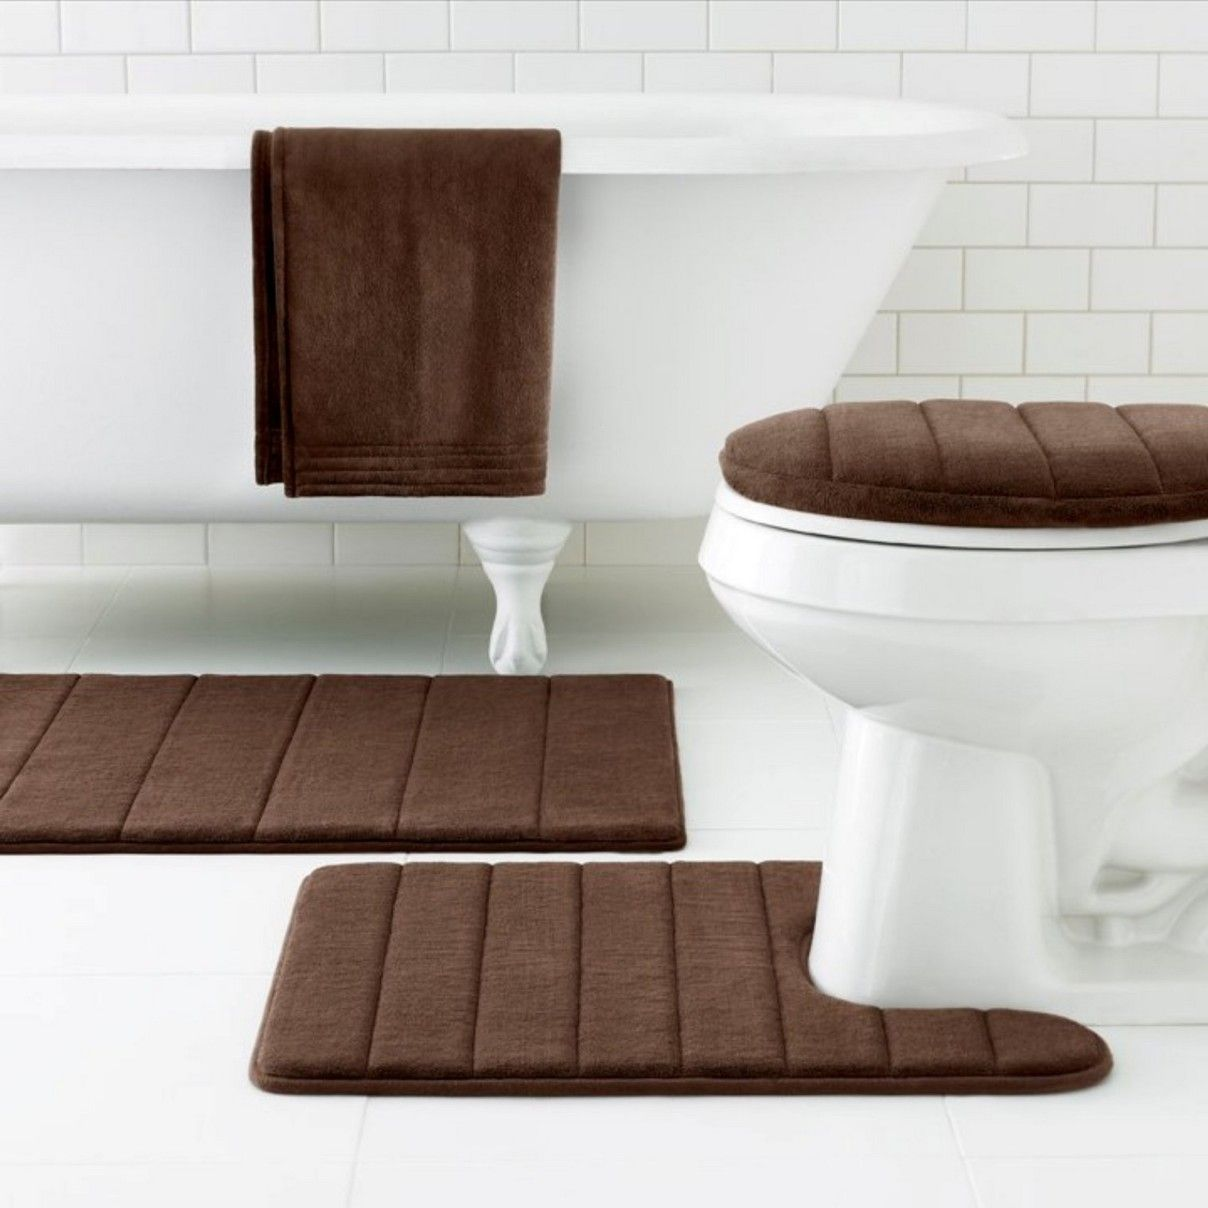 latest posts under: bathroom mats | bathroom design 2017-2018